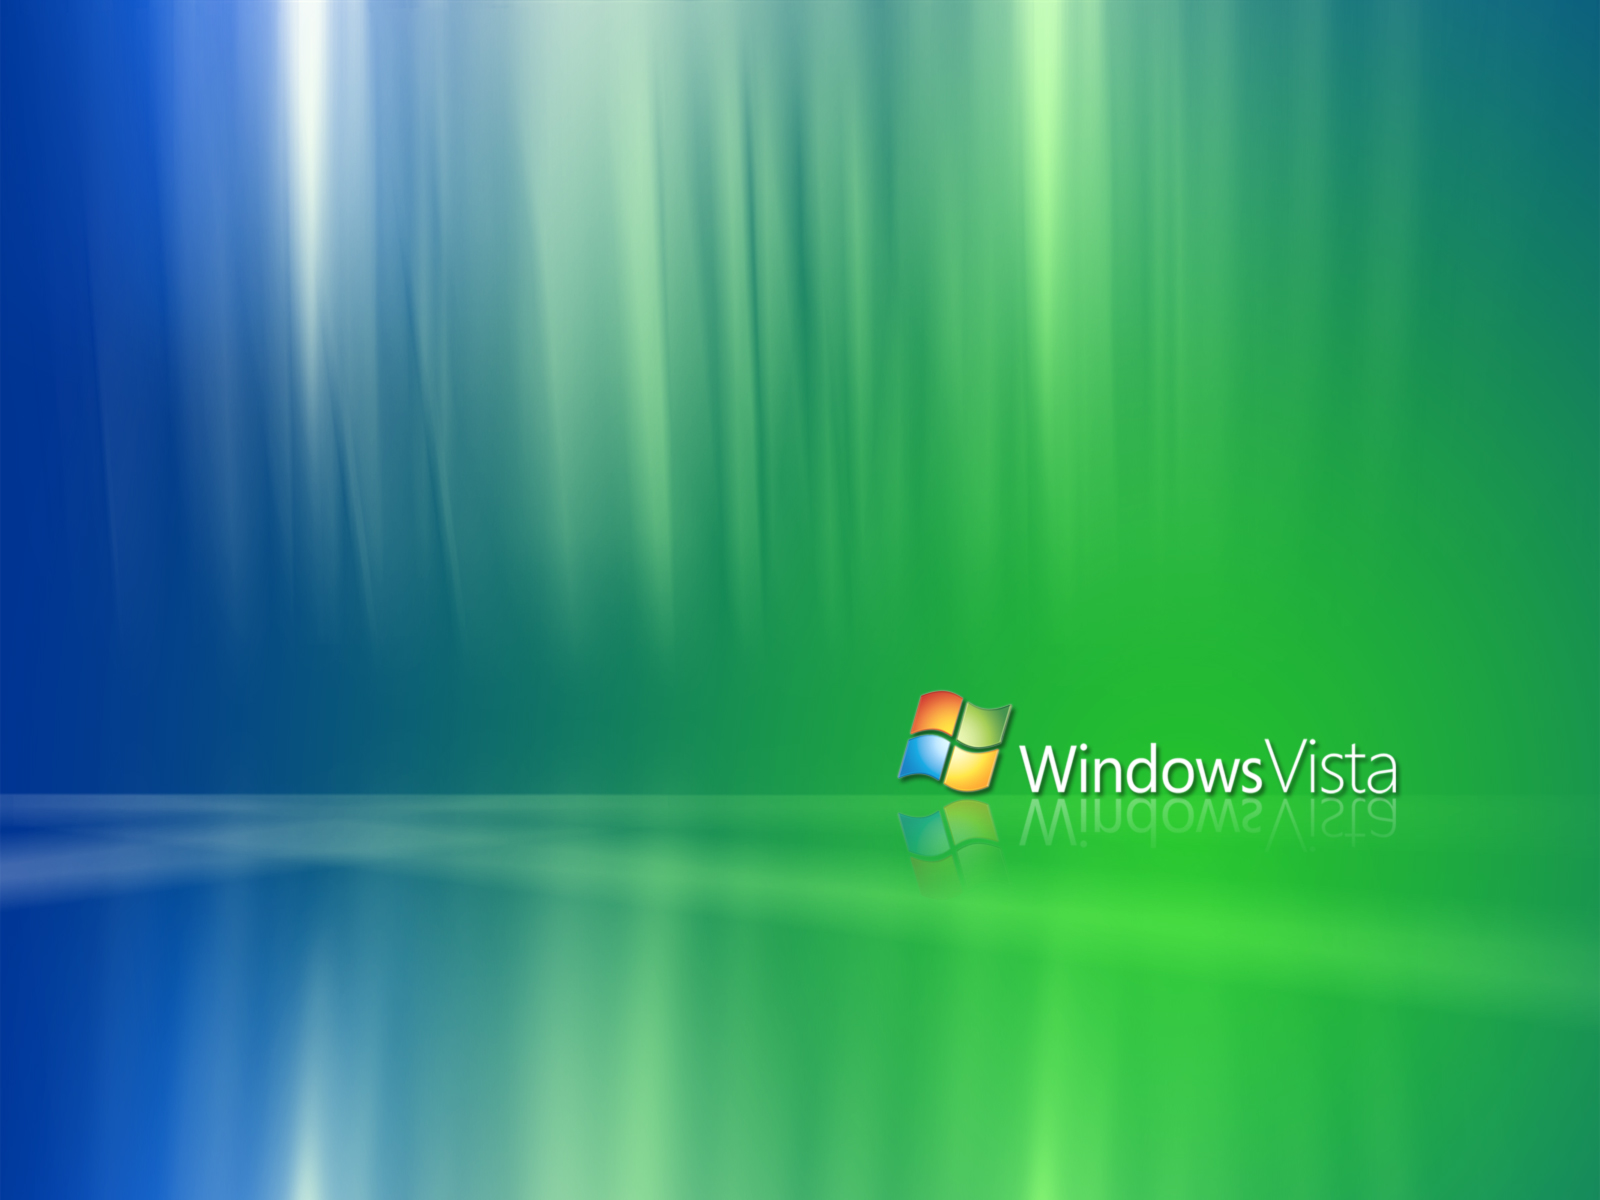 Windows Vista Wallpaper Set 23